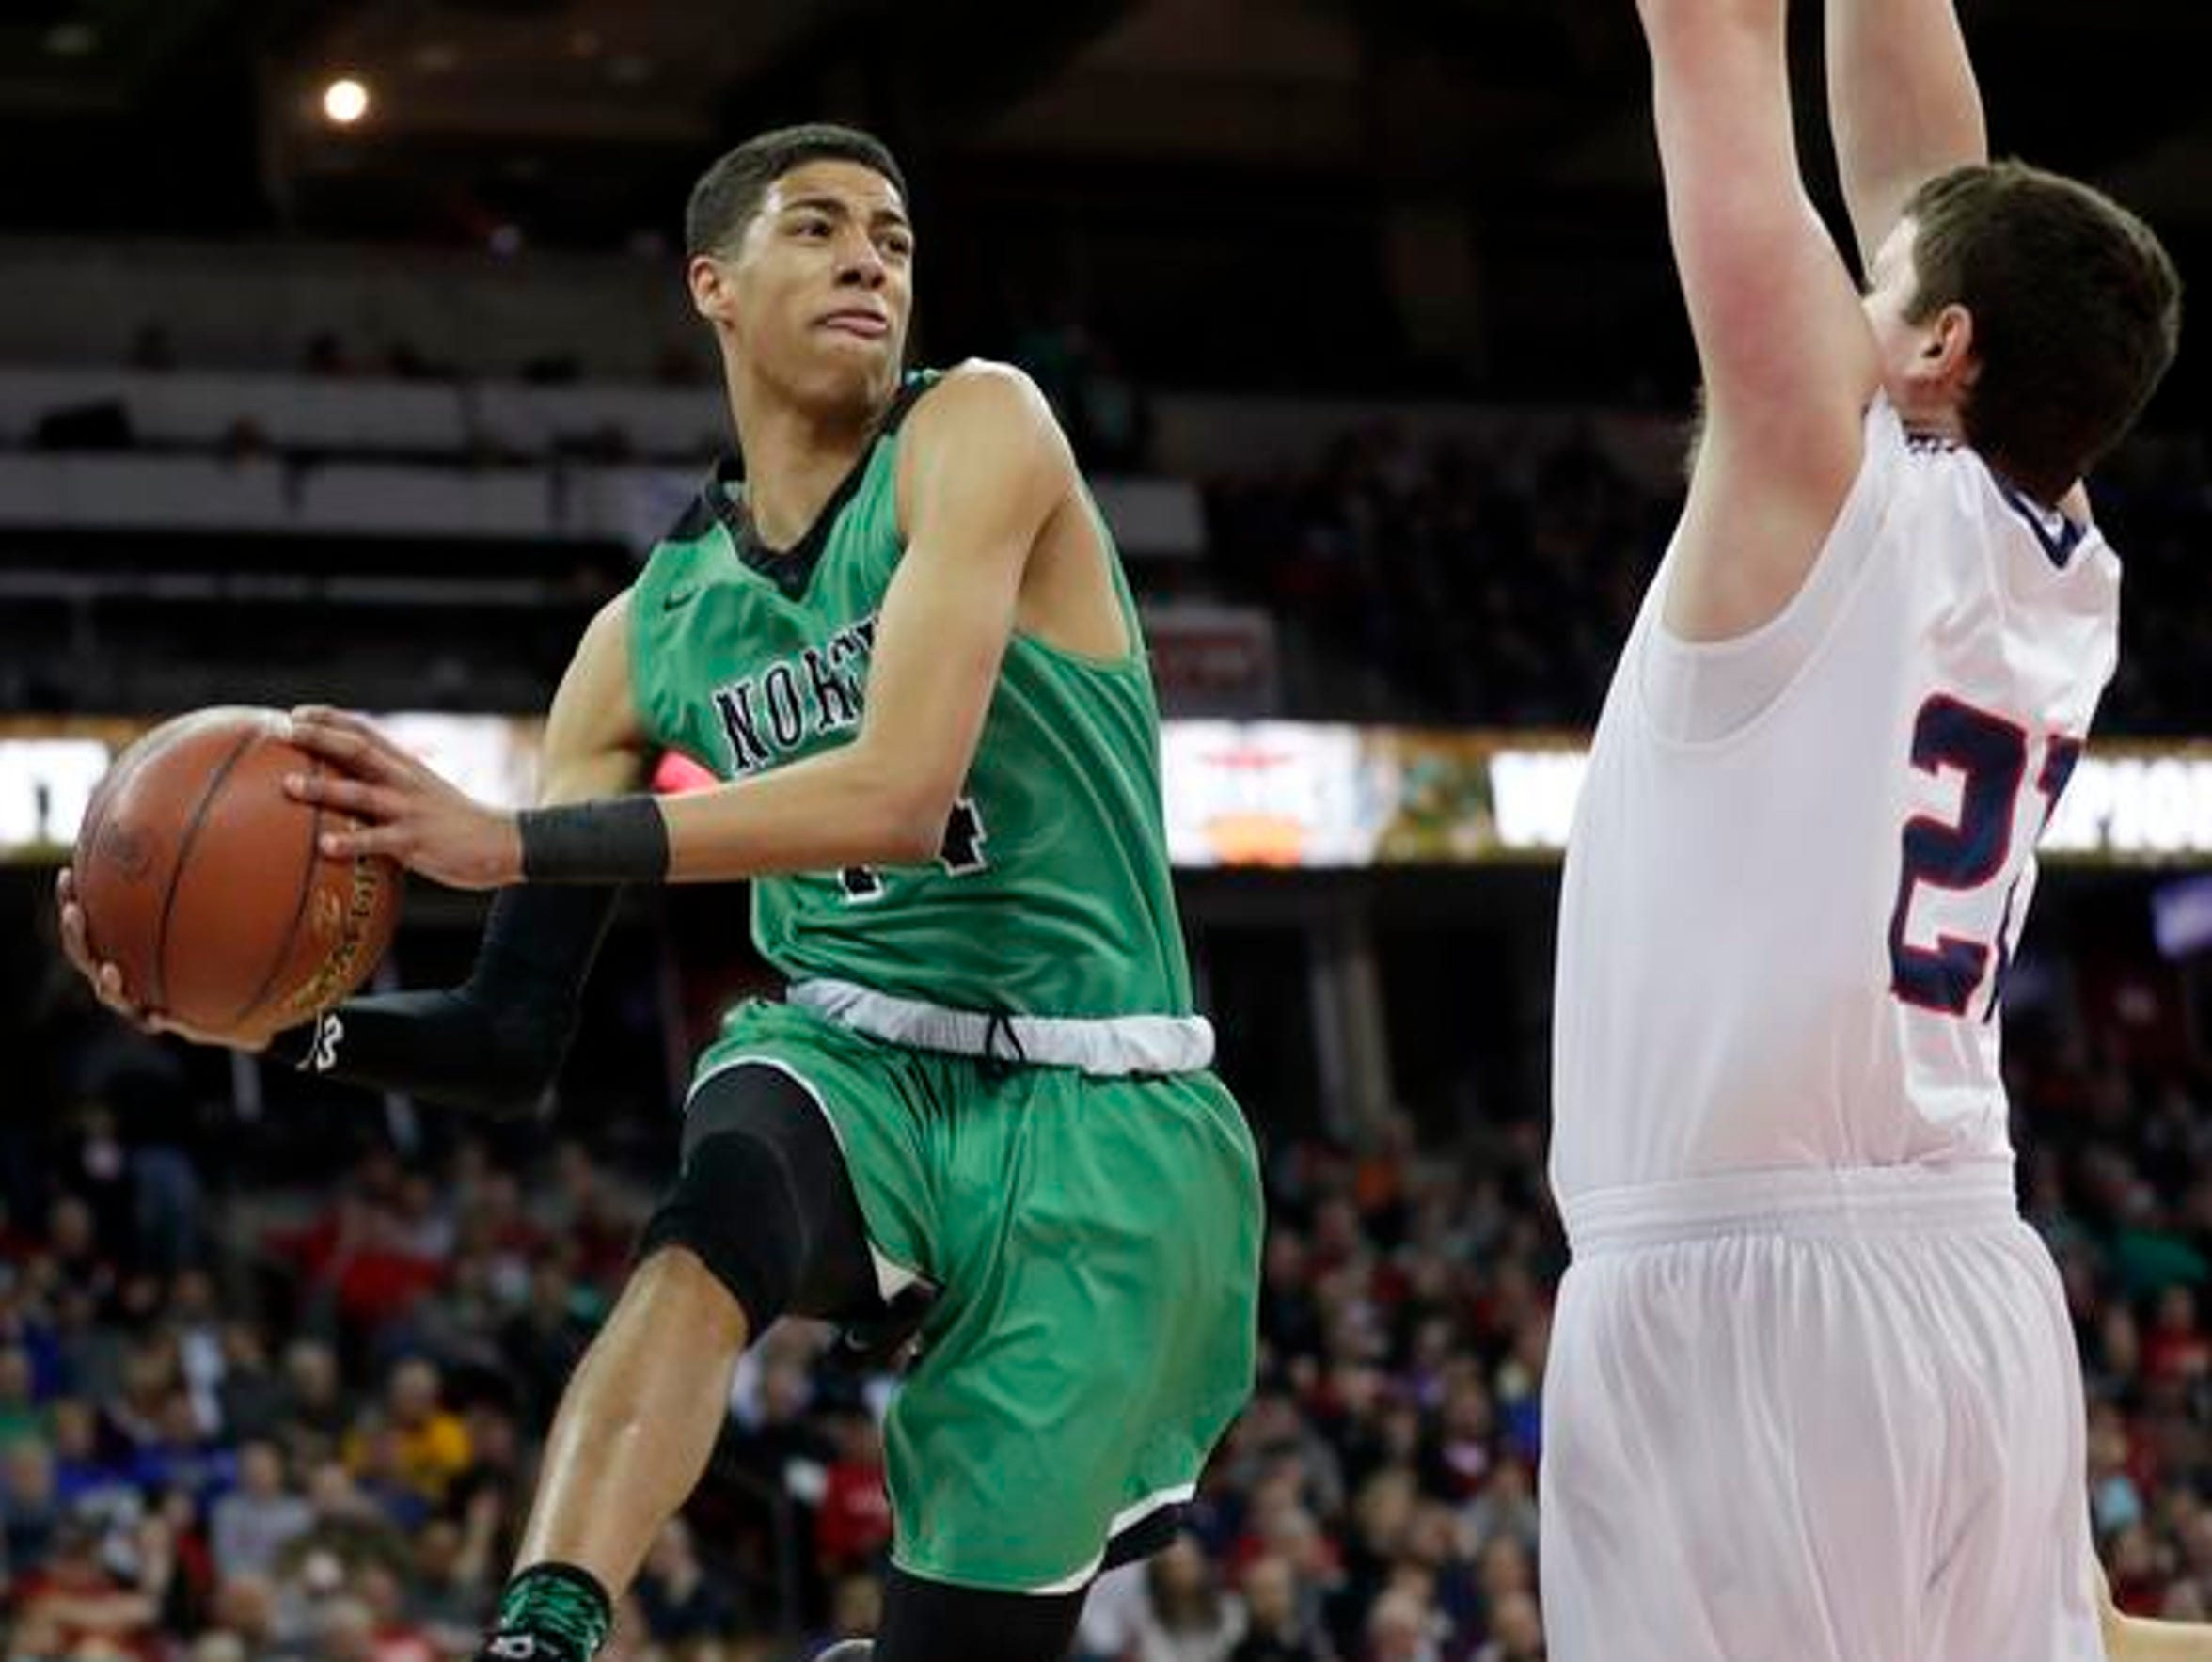 Oshkosh North's Tyrese Haliburton (14) looks for an open teammate in midair against Brookfield East in the Division 1 state championship game on Saturday, March 17, 2018, at the Kohl Center in Madison. Haliburton's Spartans won the state title.